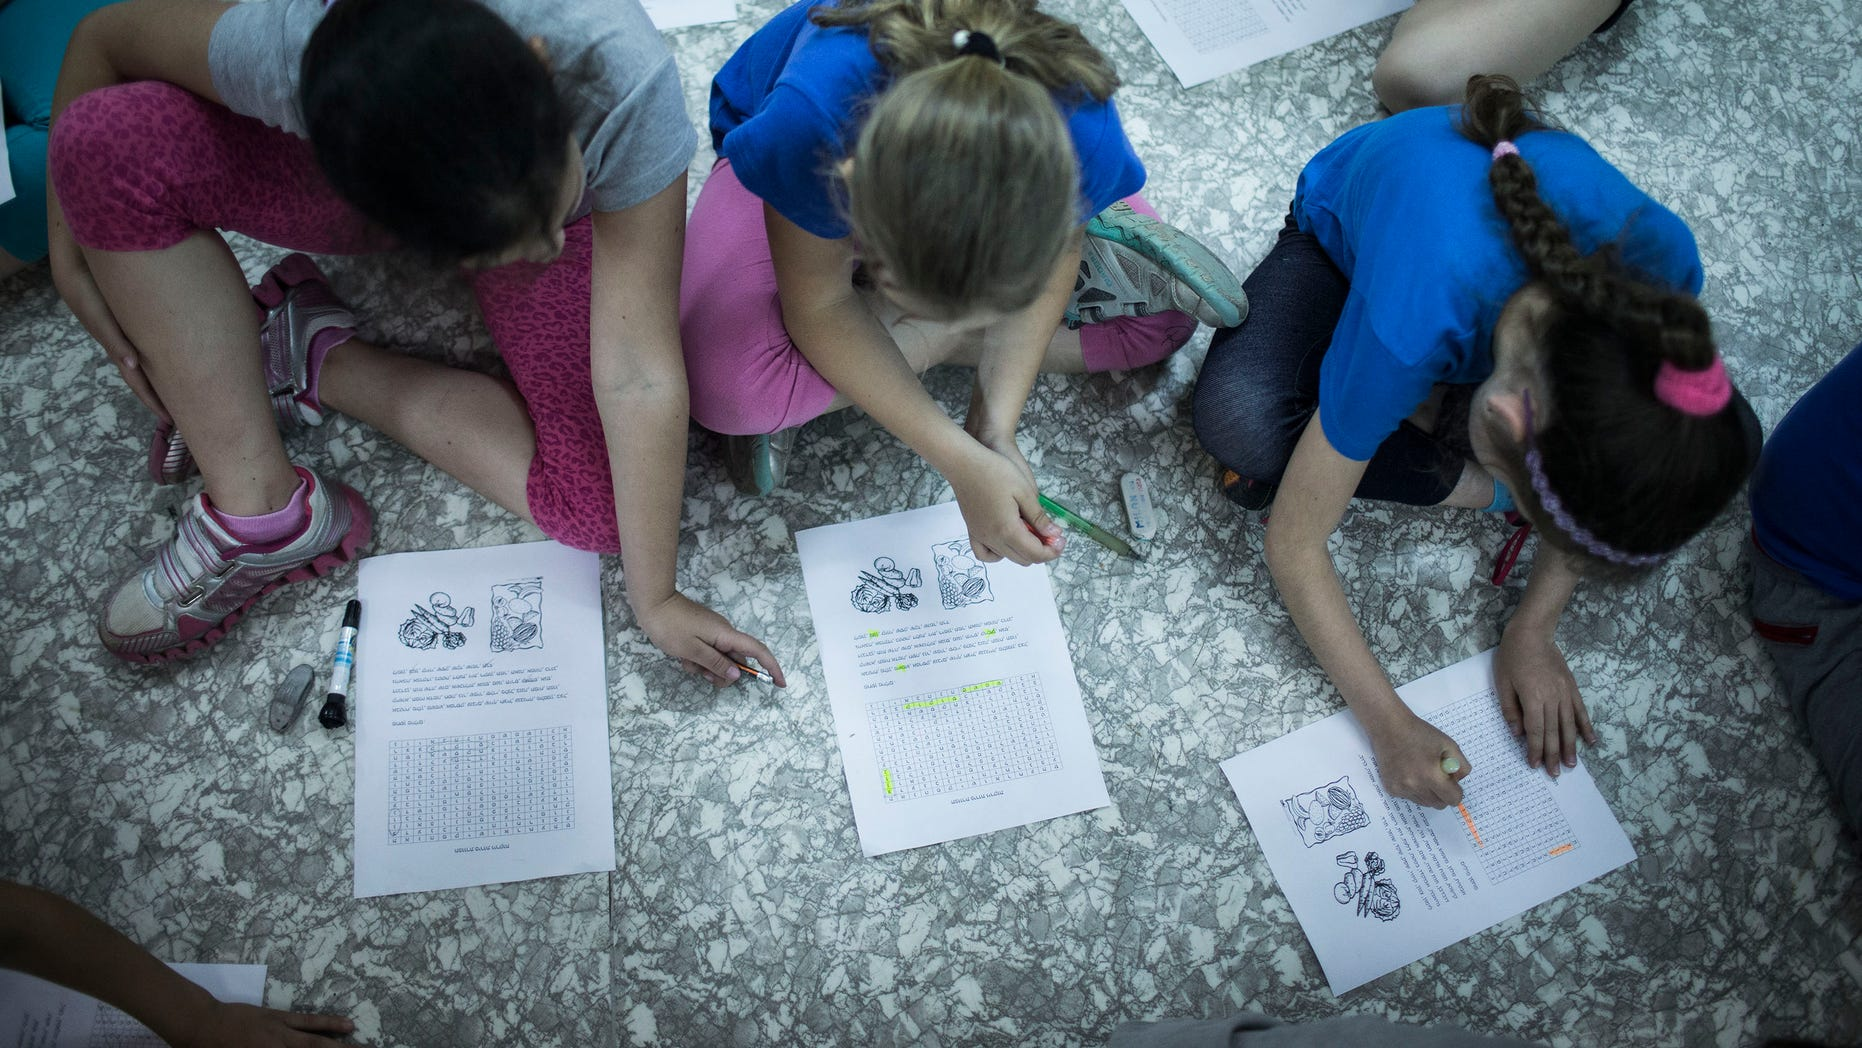 """NAZARETH-ILIT, ISRAEL - MAY 27 : Israeli schoolchildren do classwork while in a bomb shelter at their school during the Home Front drill """"Turning Point 7"""" on May 27, 2013 in Nazareth-Ilit, Israel. The nationwide exercise tests the civilian population's response to a possible massive rocket attack from three fronts. (Photo by Ilia Yefimovich/Getty Images)"""